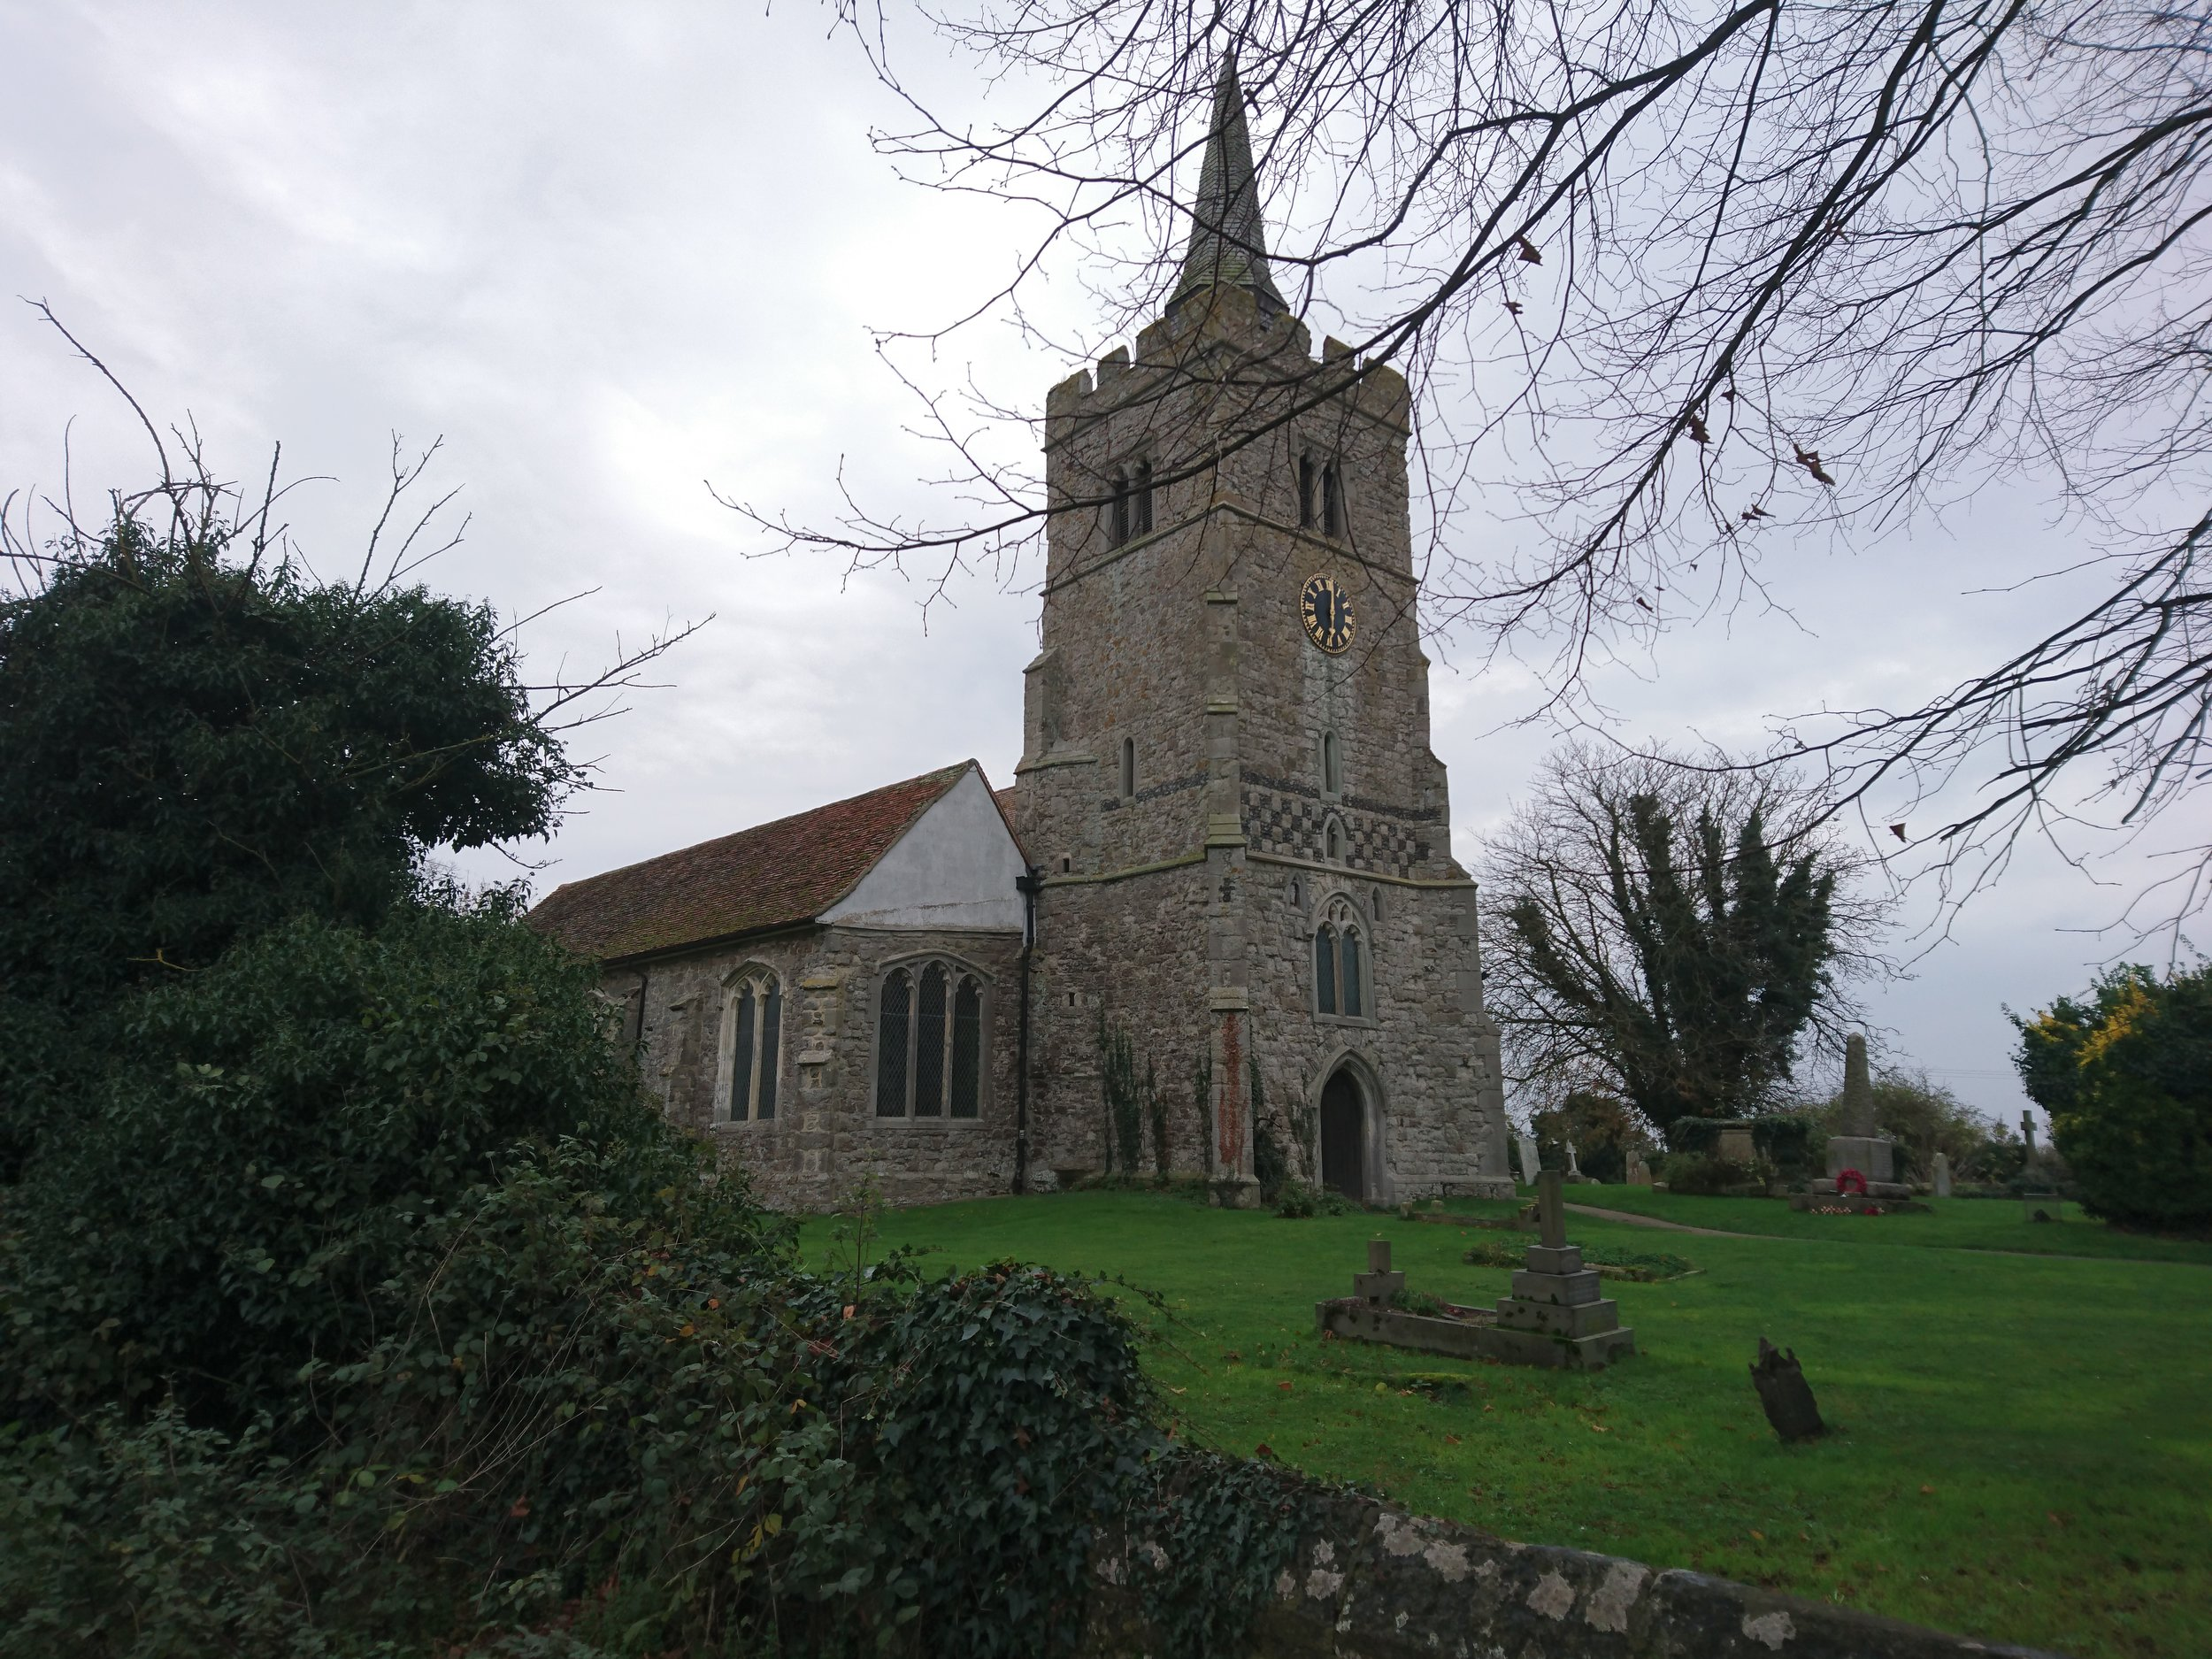 Barling Church